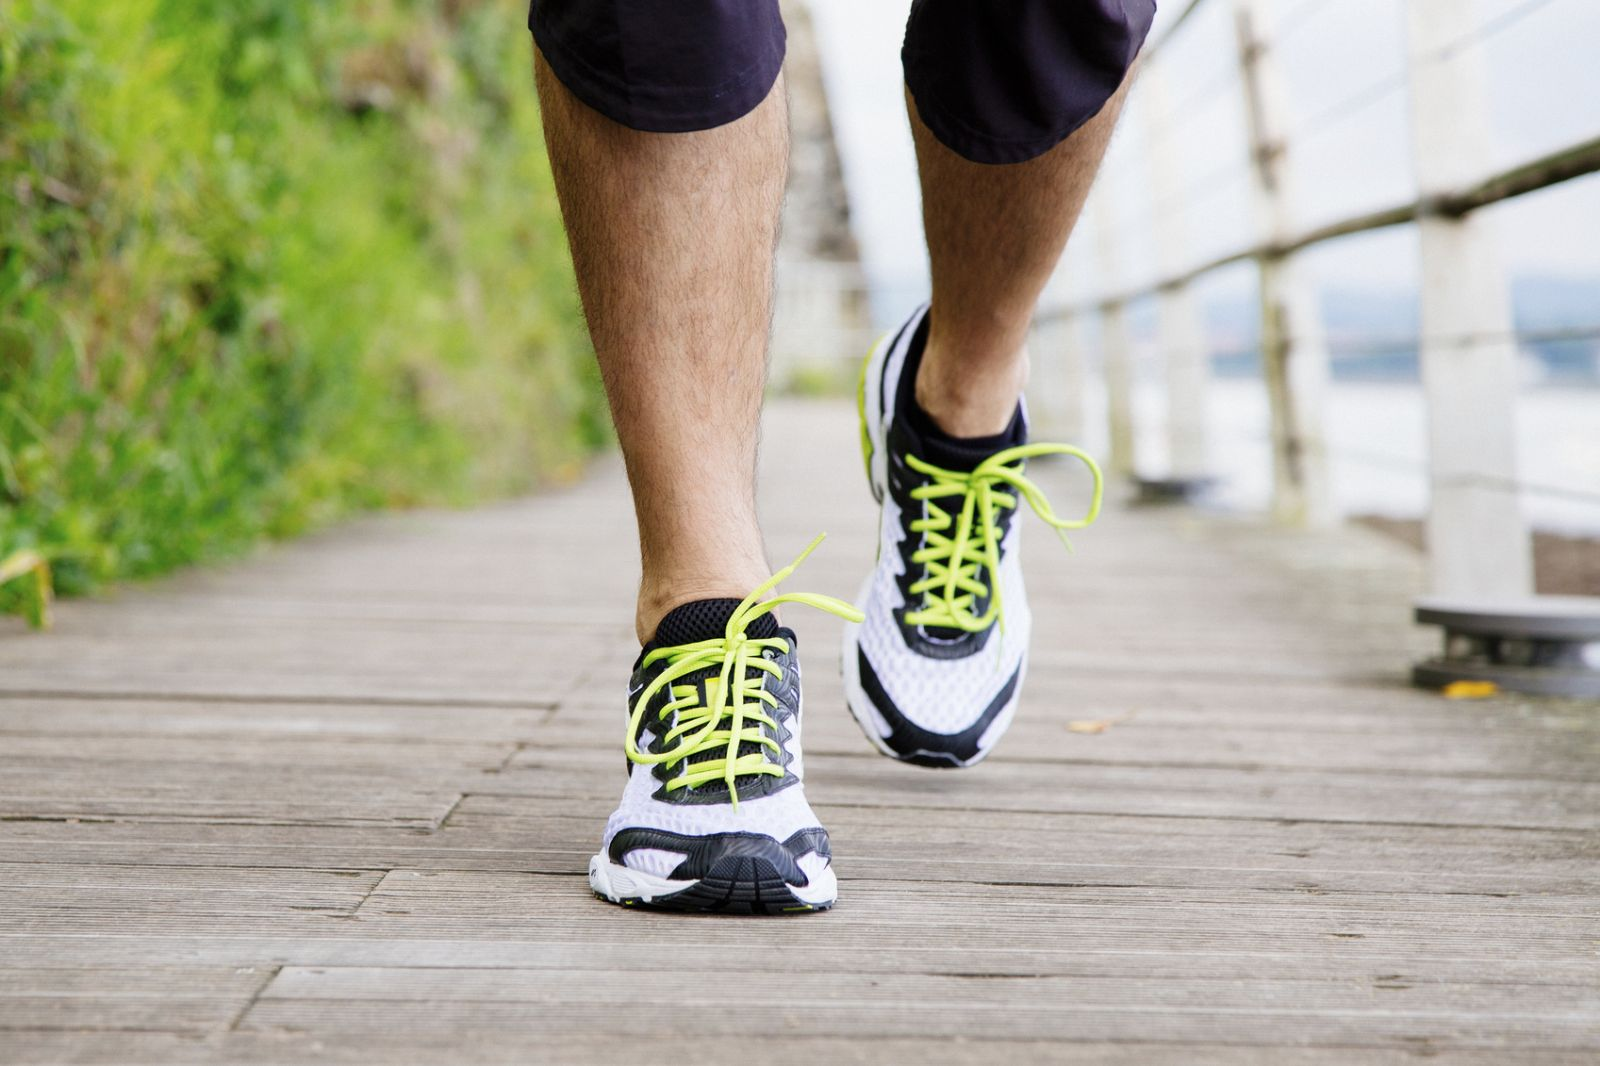 Want healthy feet? Keep a healthy weight - Harvard Health